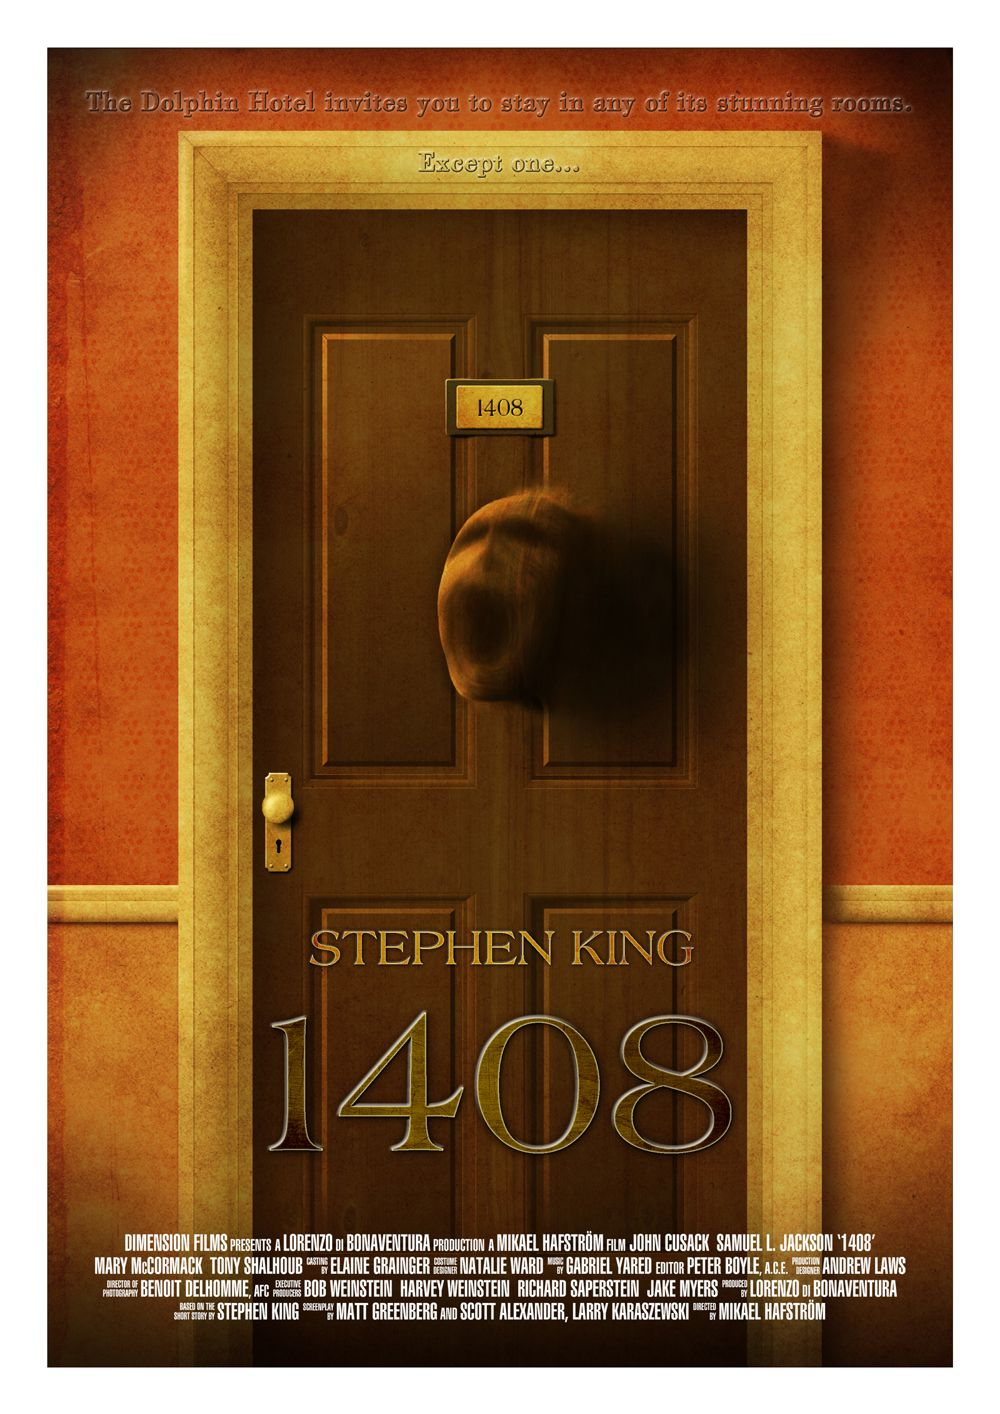 1408 for Stephen king habitacion 1408